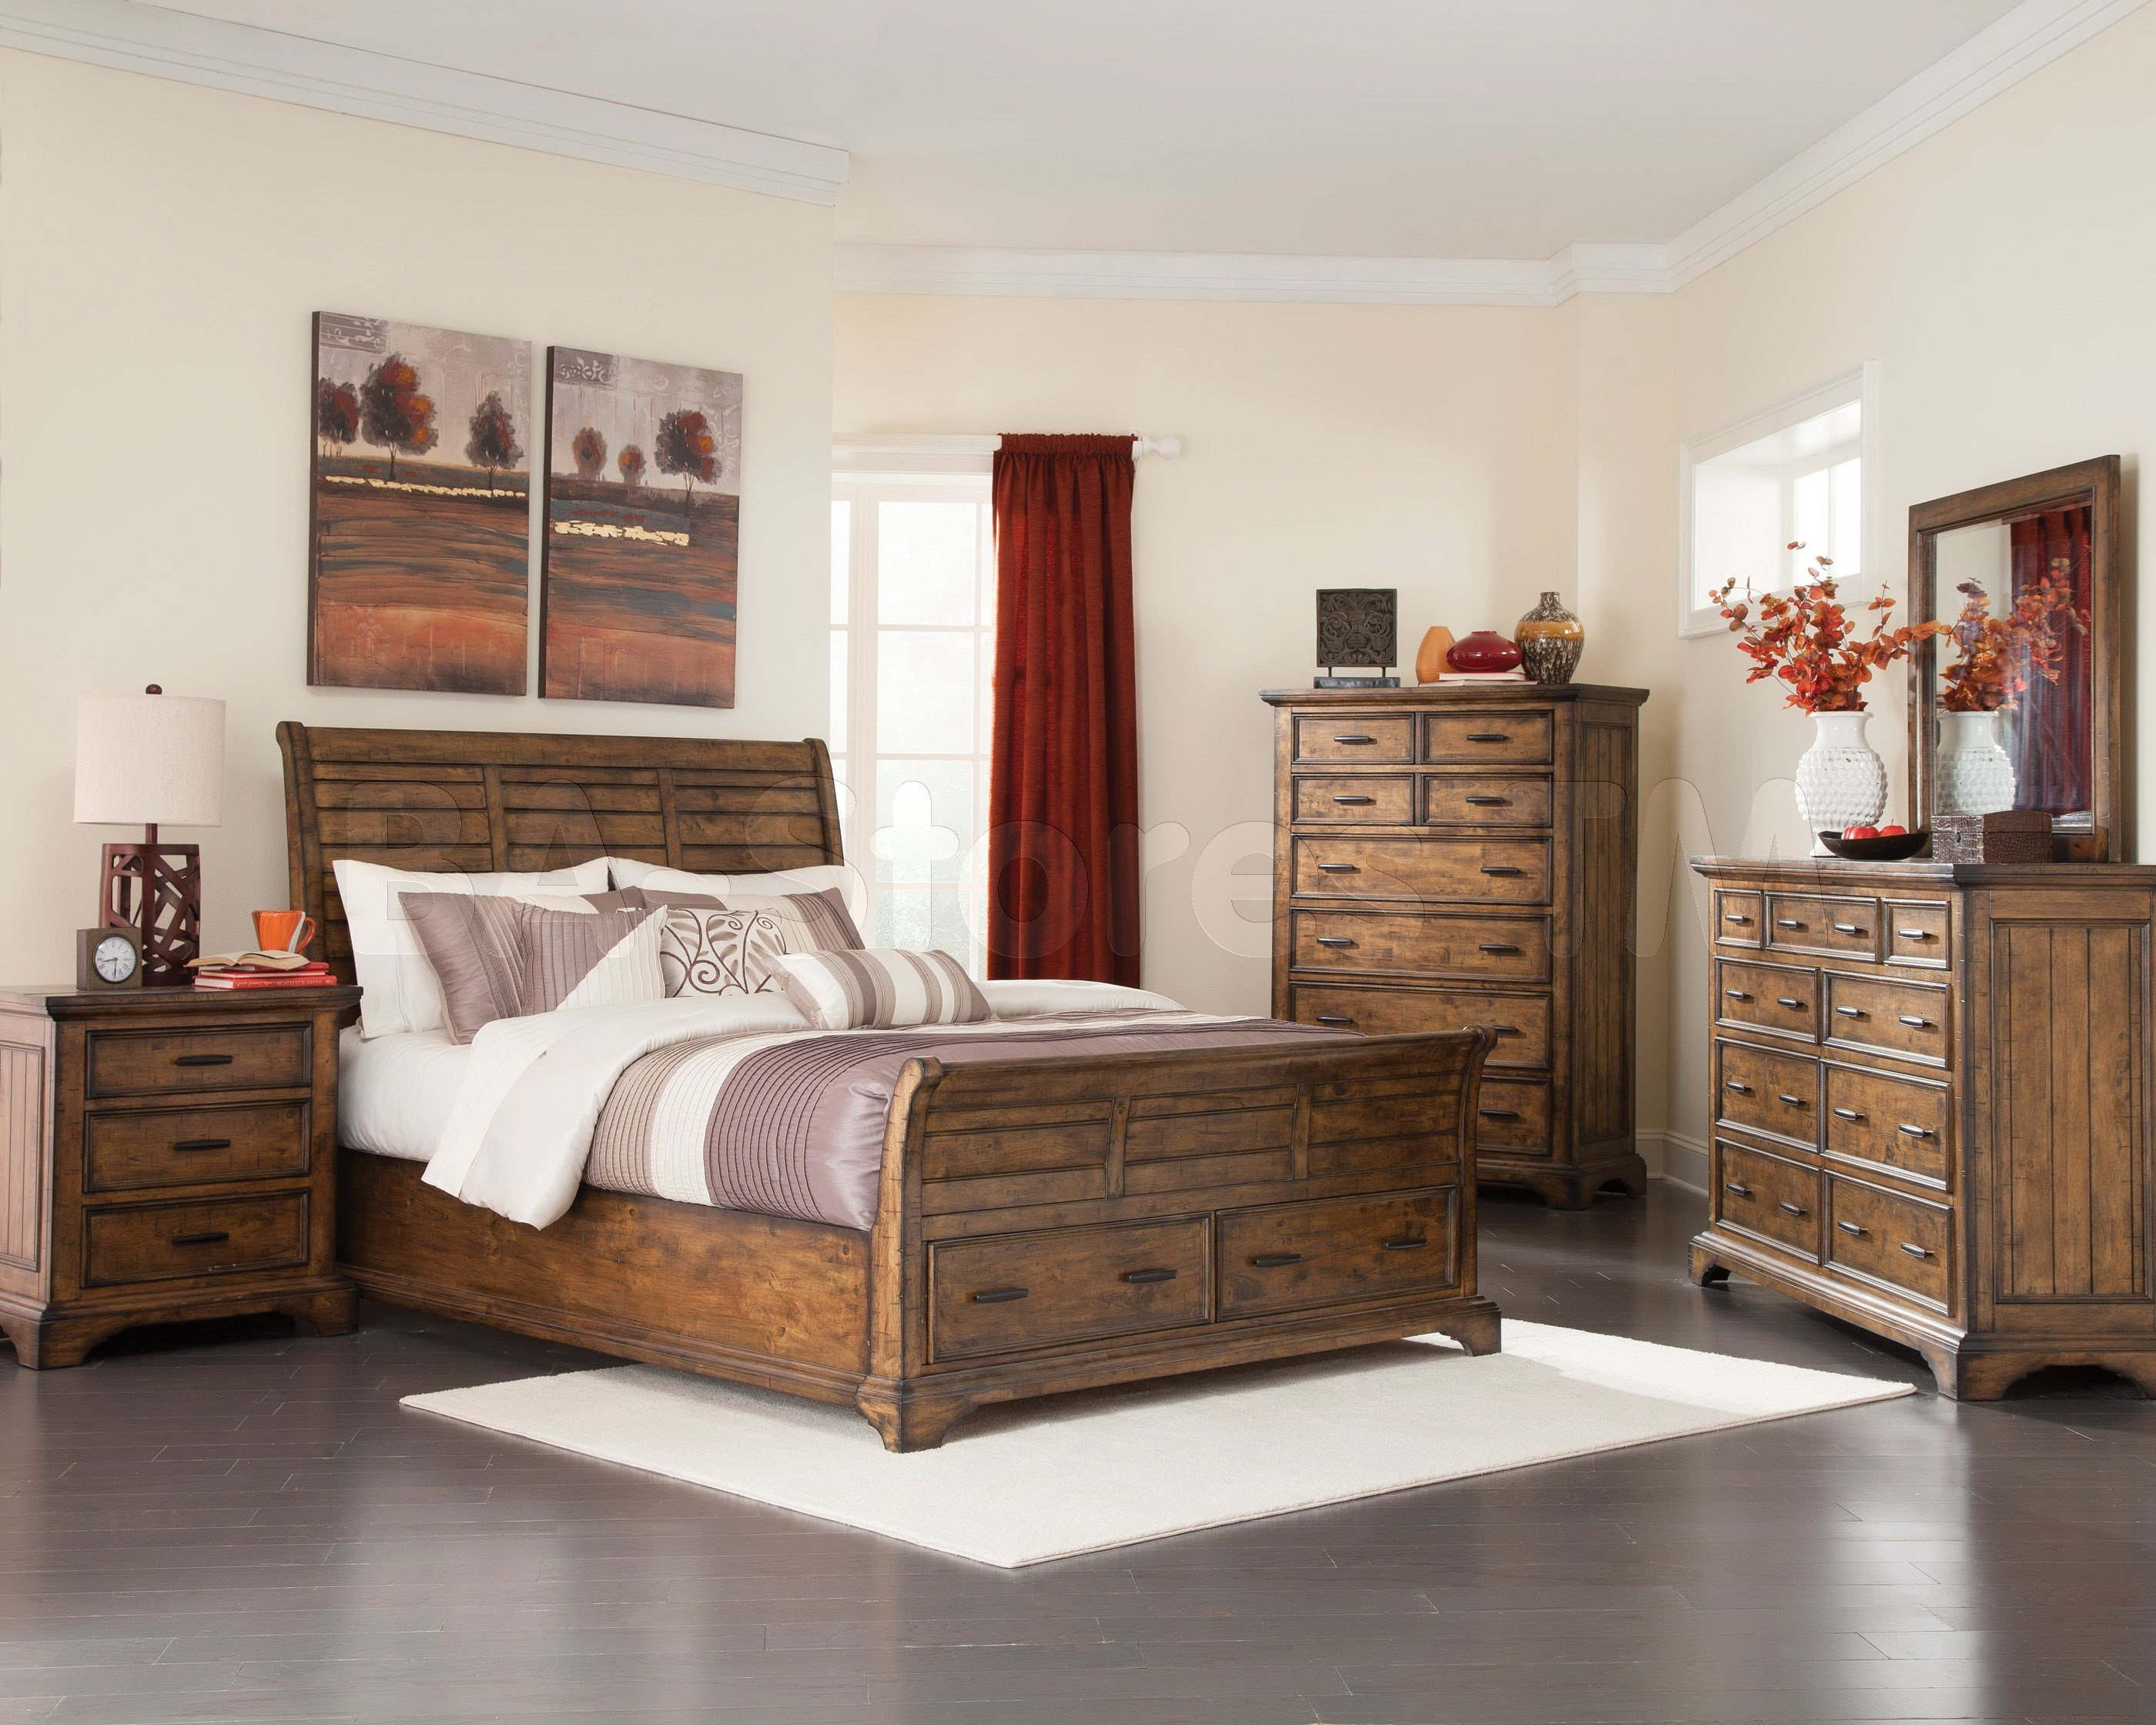 Best Bedroom Remarkable Rustic Bedroom Sets Design For Bedroom With Pictures